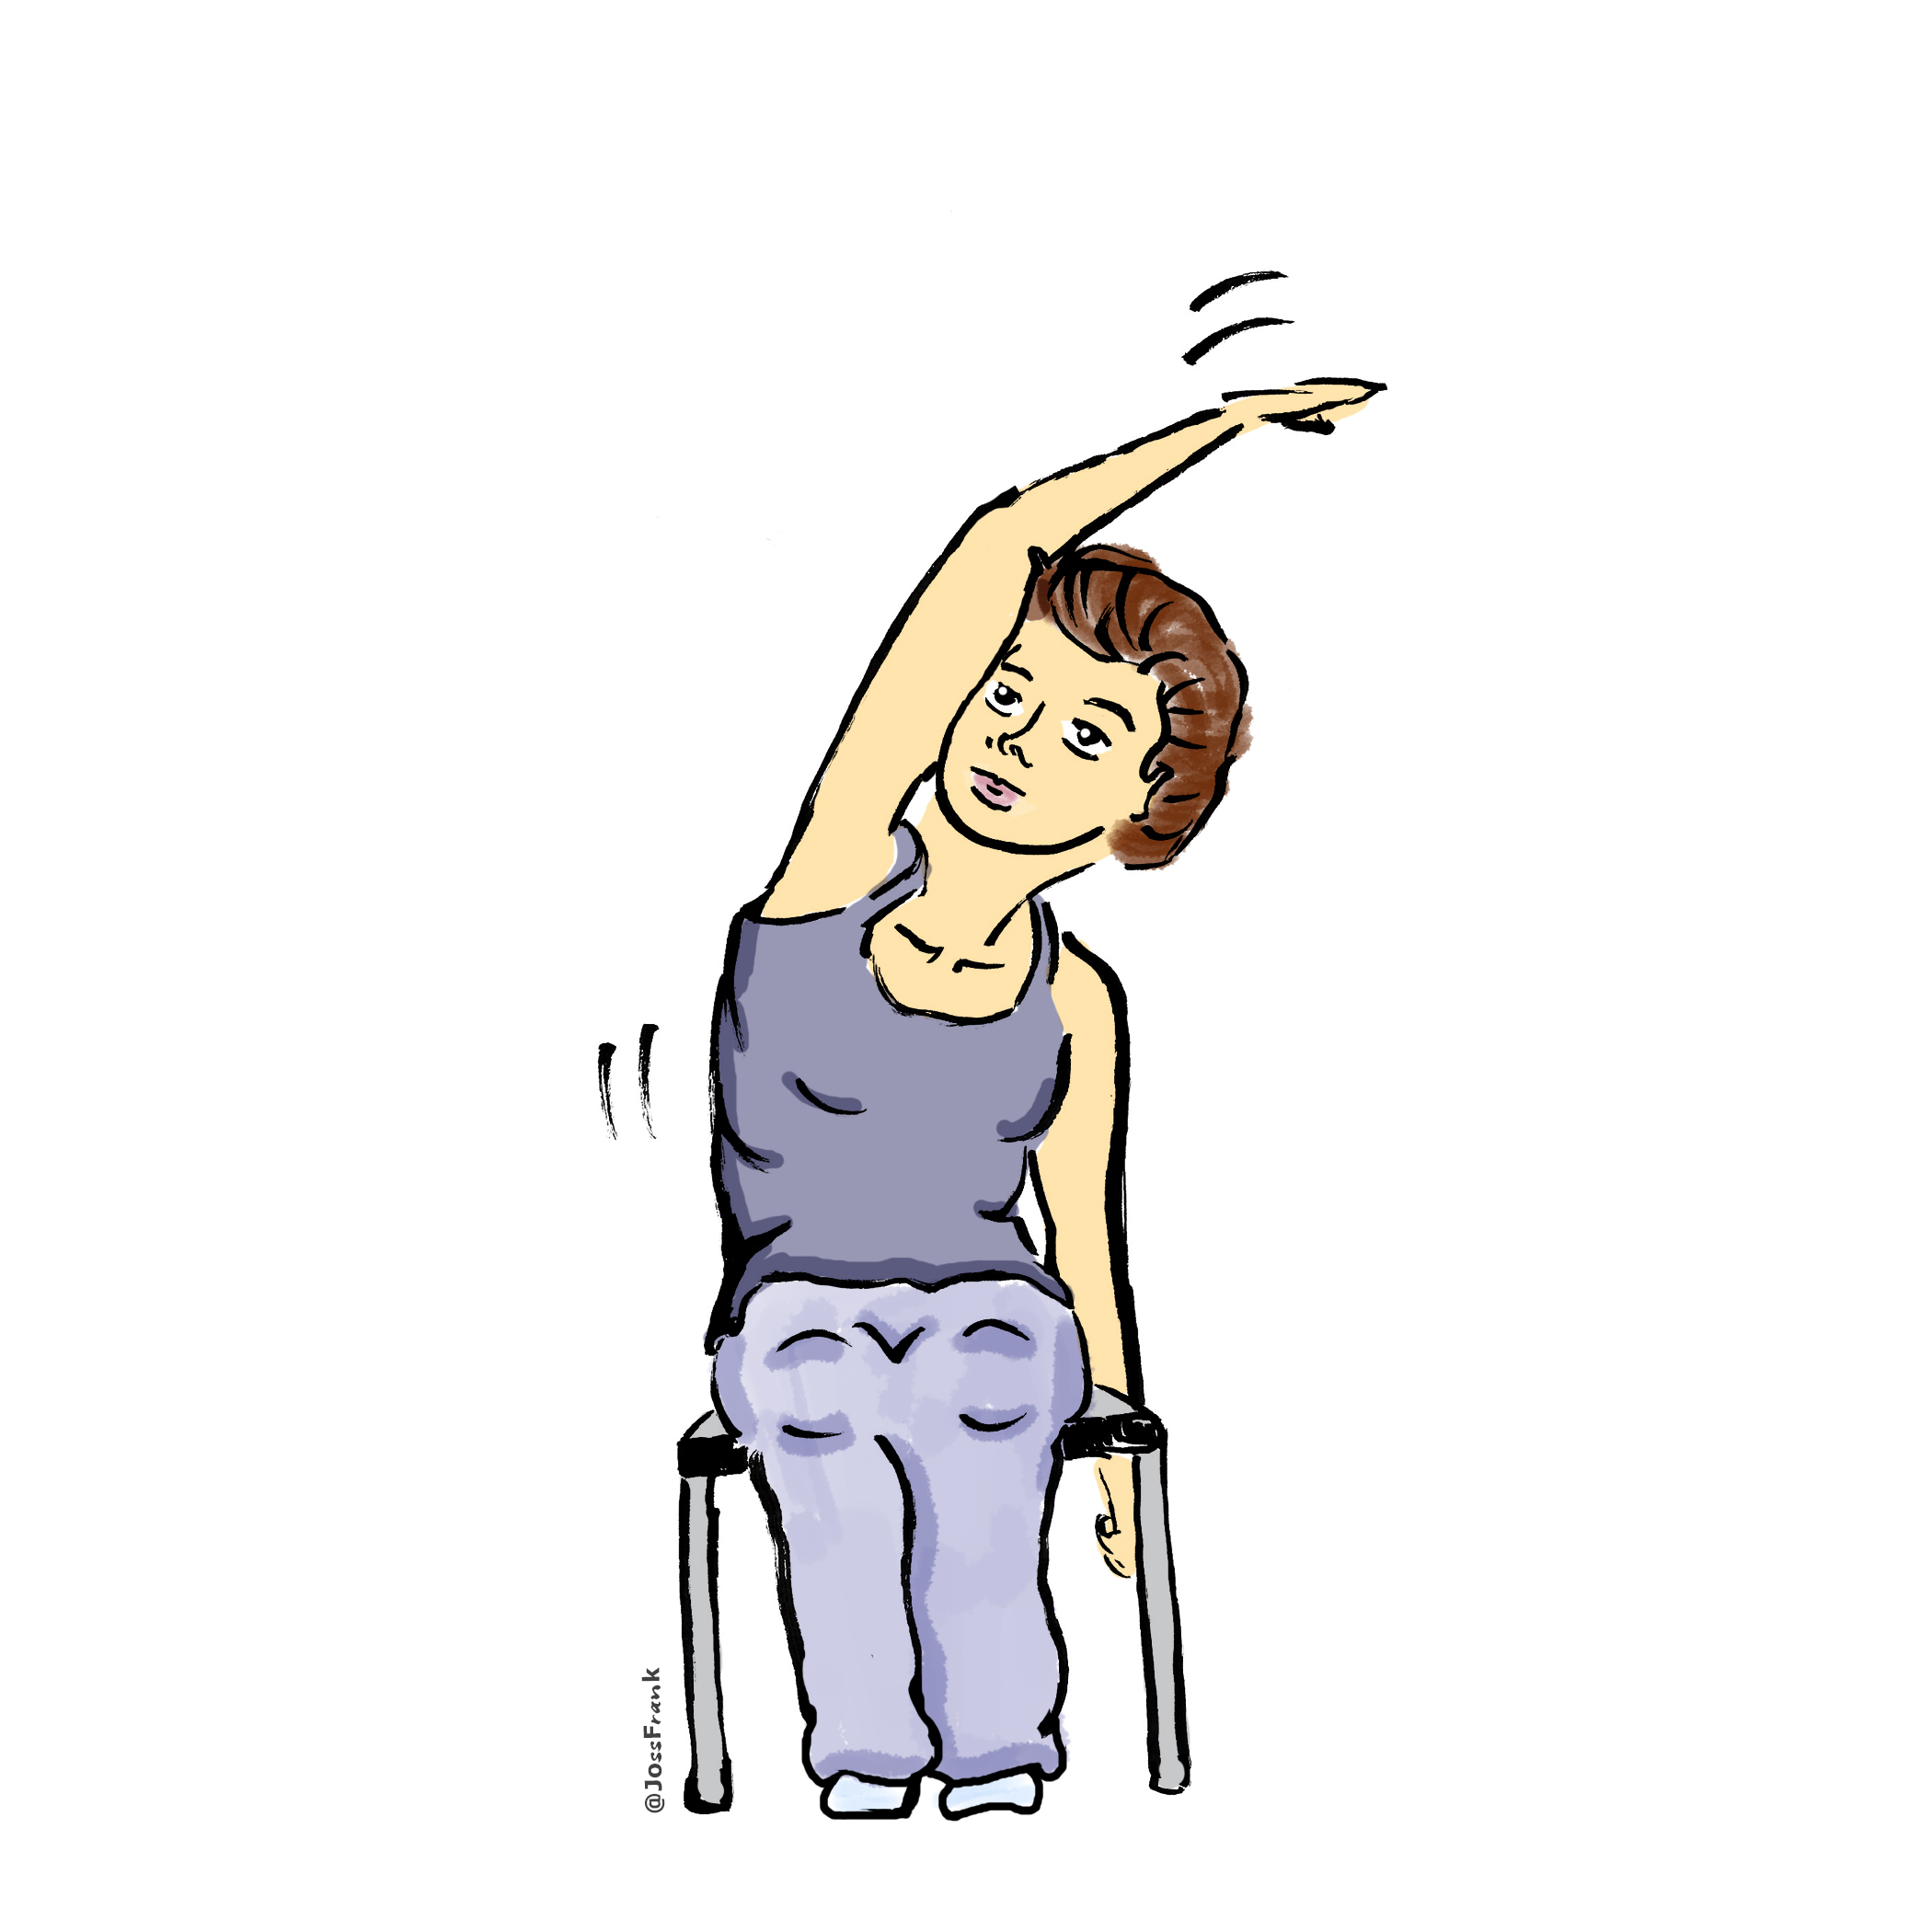 a gender neutral person with light skin and short red hair sitting in a chair doing a side stretch with one arm raised over the head.